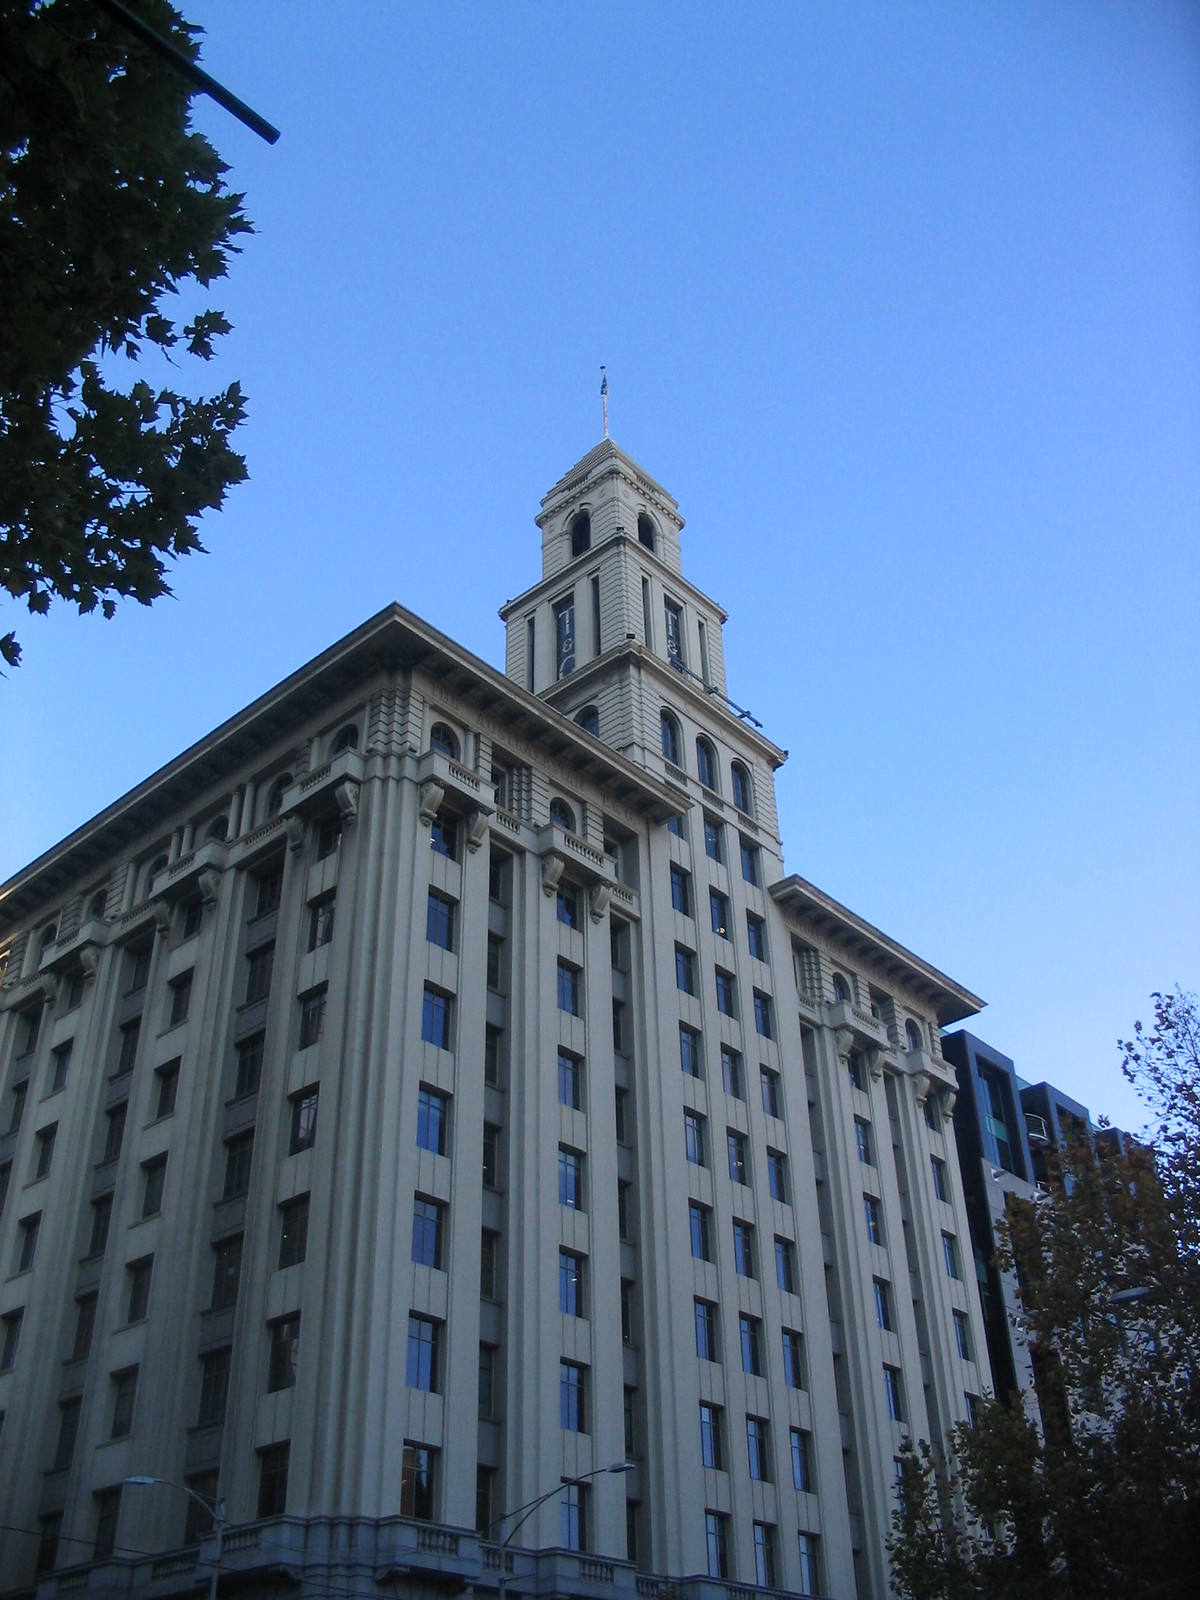 T&G building, Collins Street, Melbourne (May 2006)